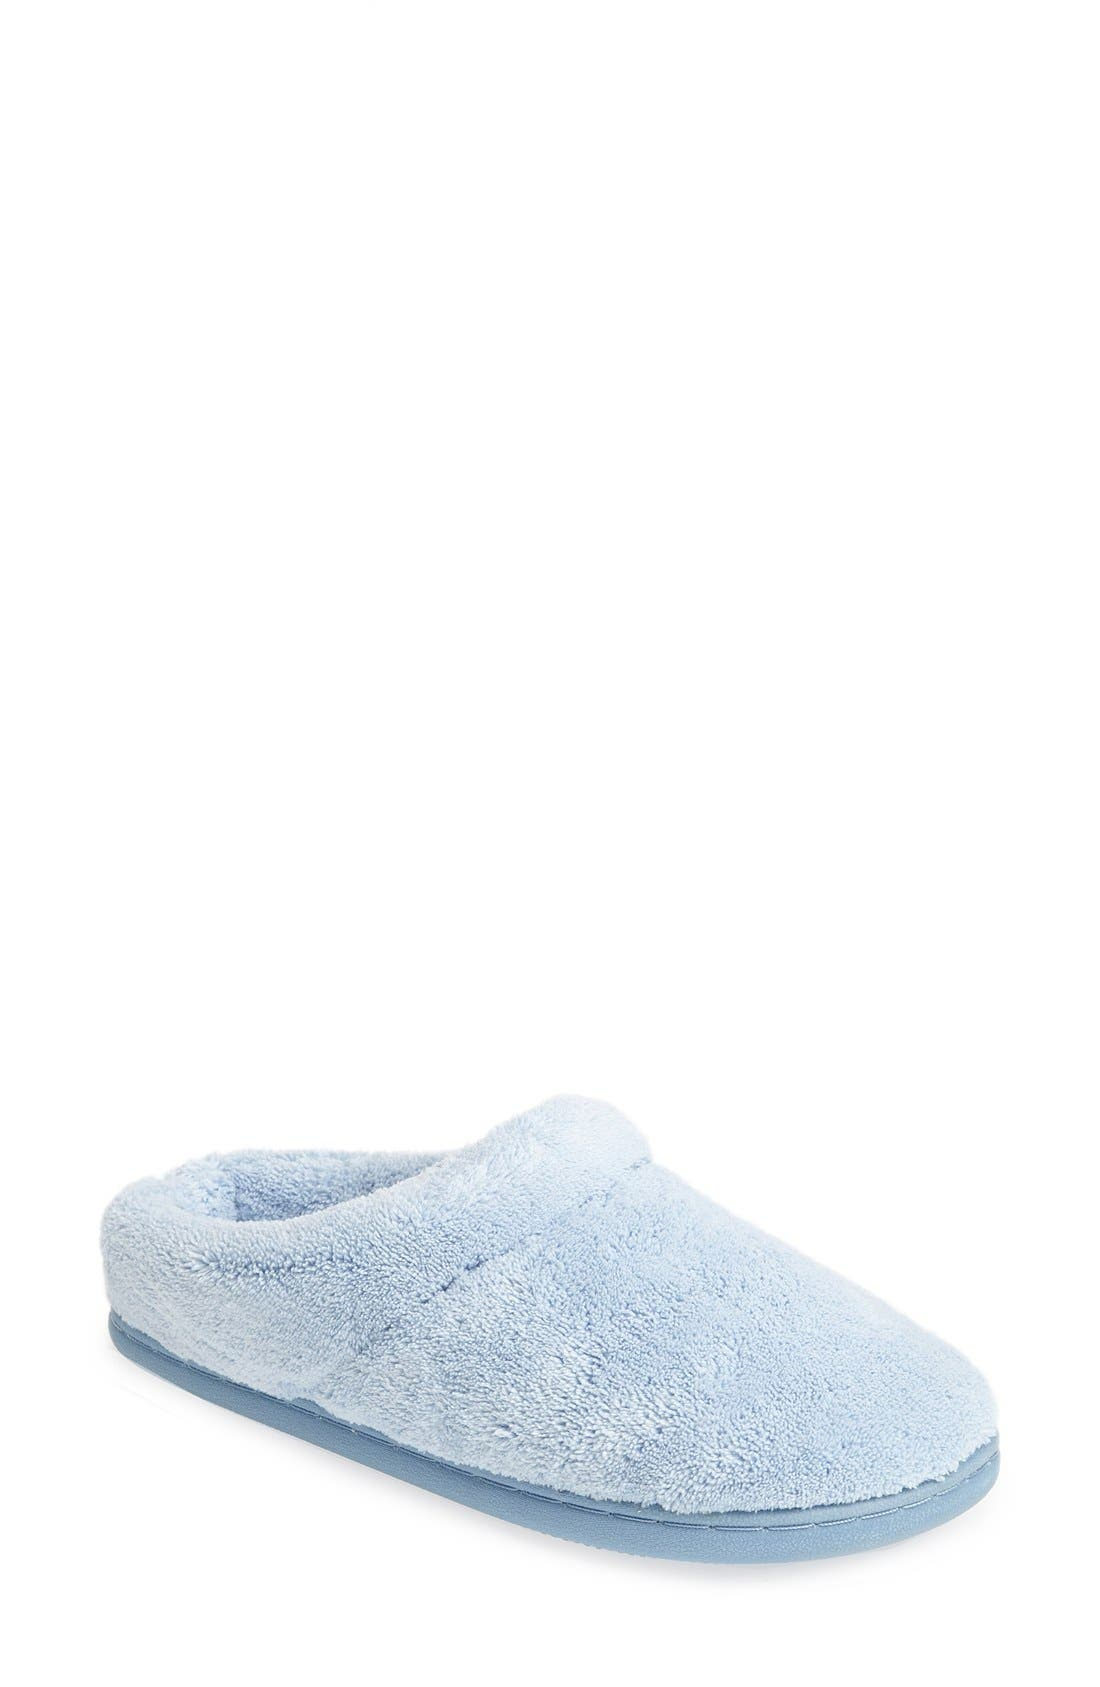 'Windsock' Slipper,                             Main thumbnail 1, color,                             Light Blue